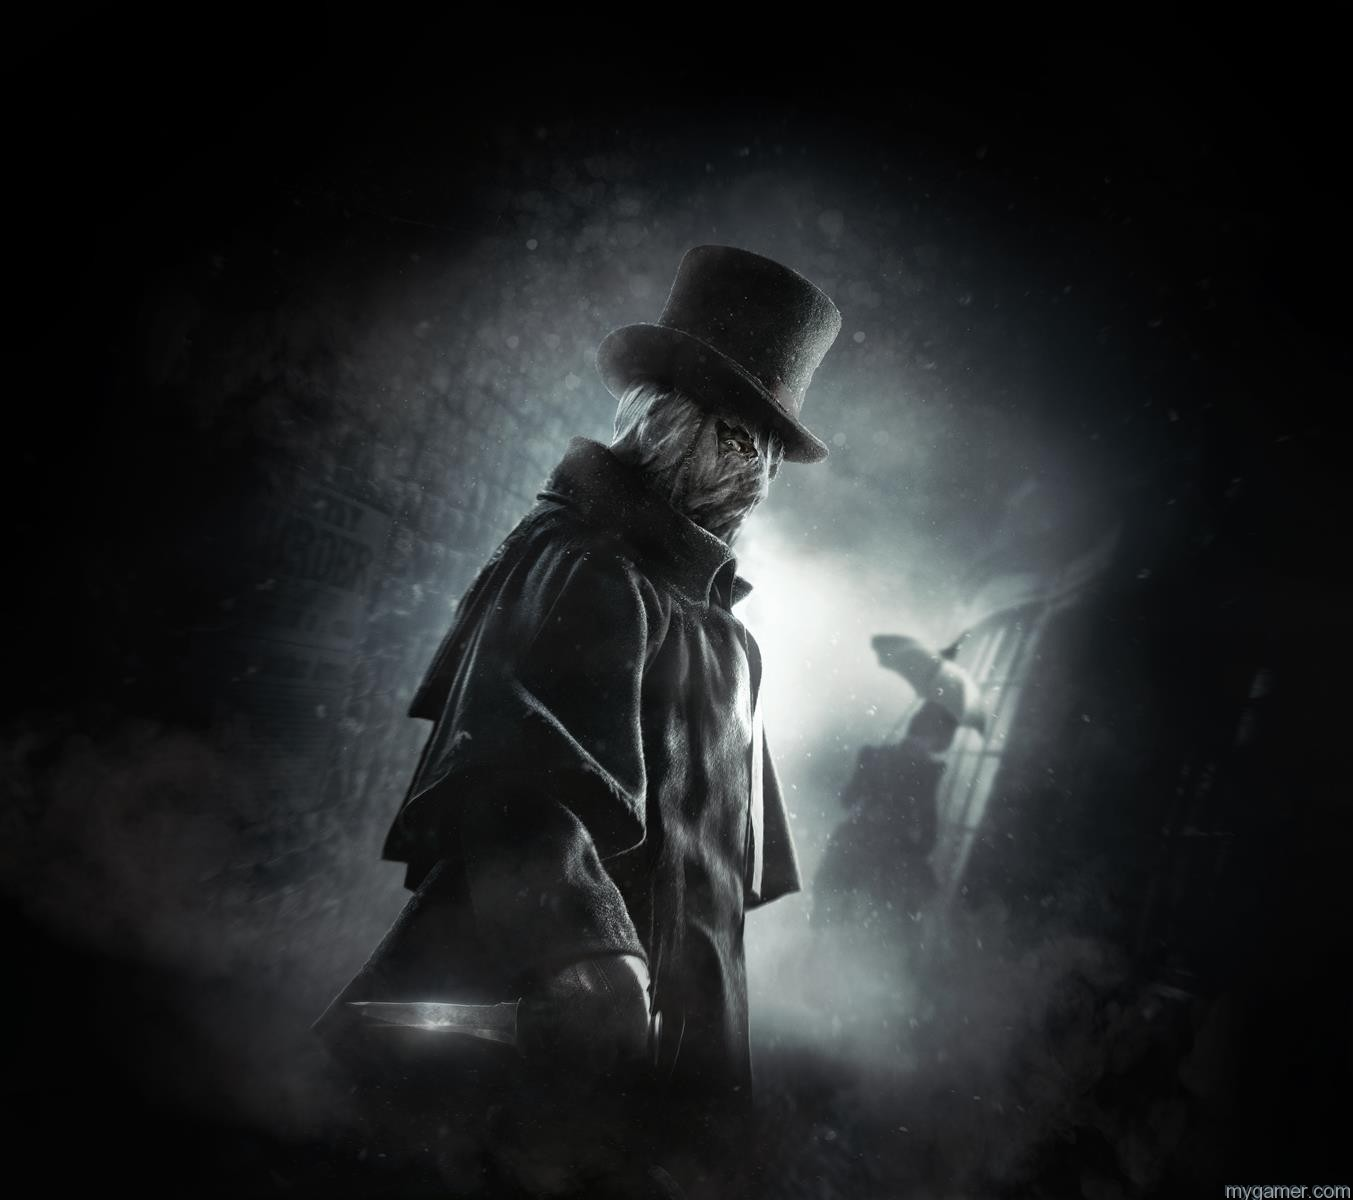 assassins_creed_syndicate_jack_the_ripper_dlc_1 jack the ripper dlc coming to assassin's creed syndicate in oct Jack The Ripper DLC Coming to Assassin's Creed Syndicate in Oct assassins creed syndicate jack the ripper dlc 1